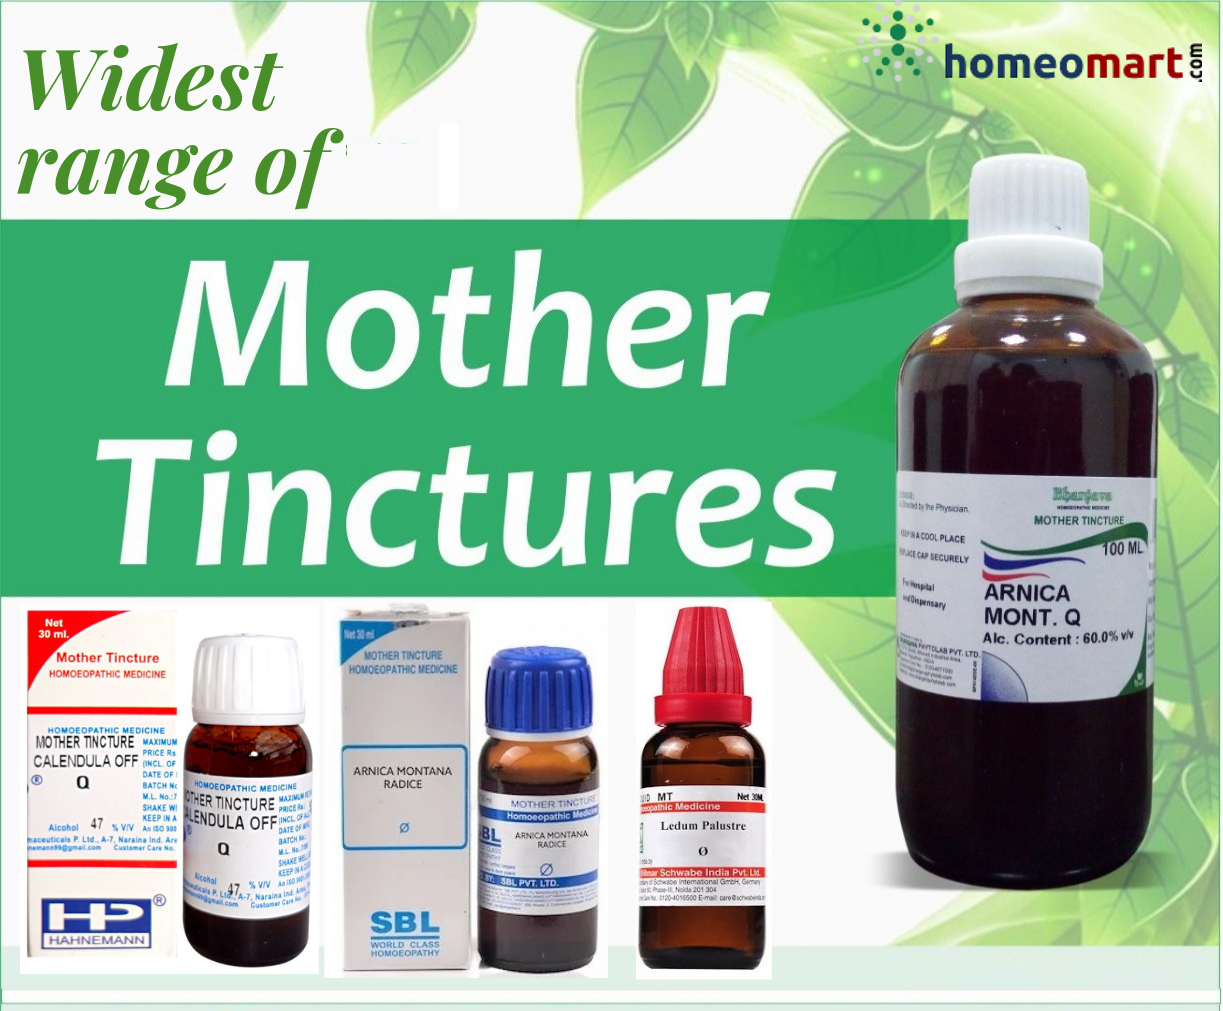 Homeopathy Mother Tinctures Q from A to Z of leading brands